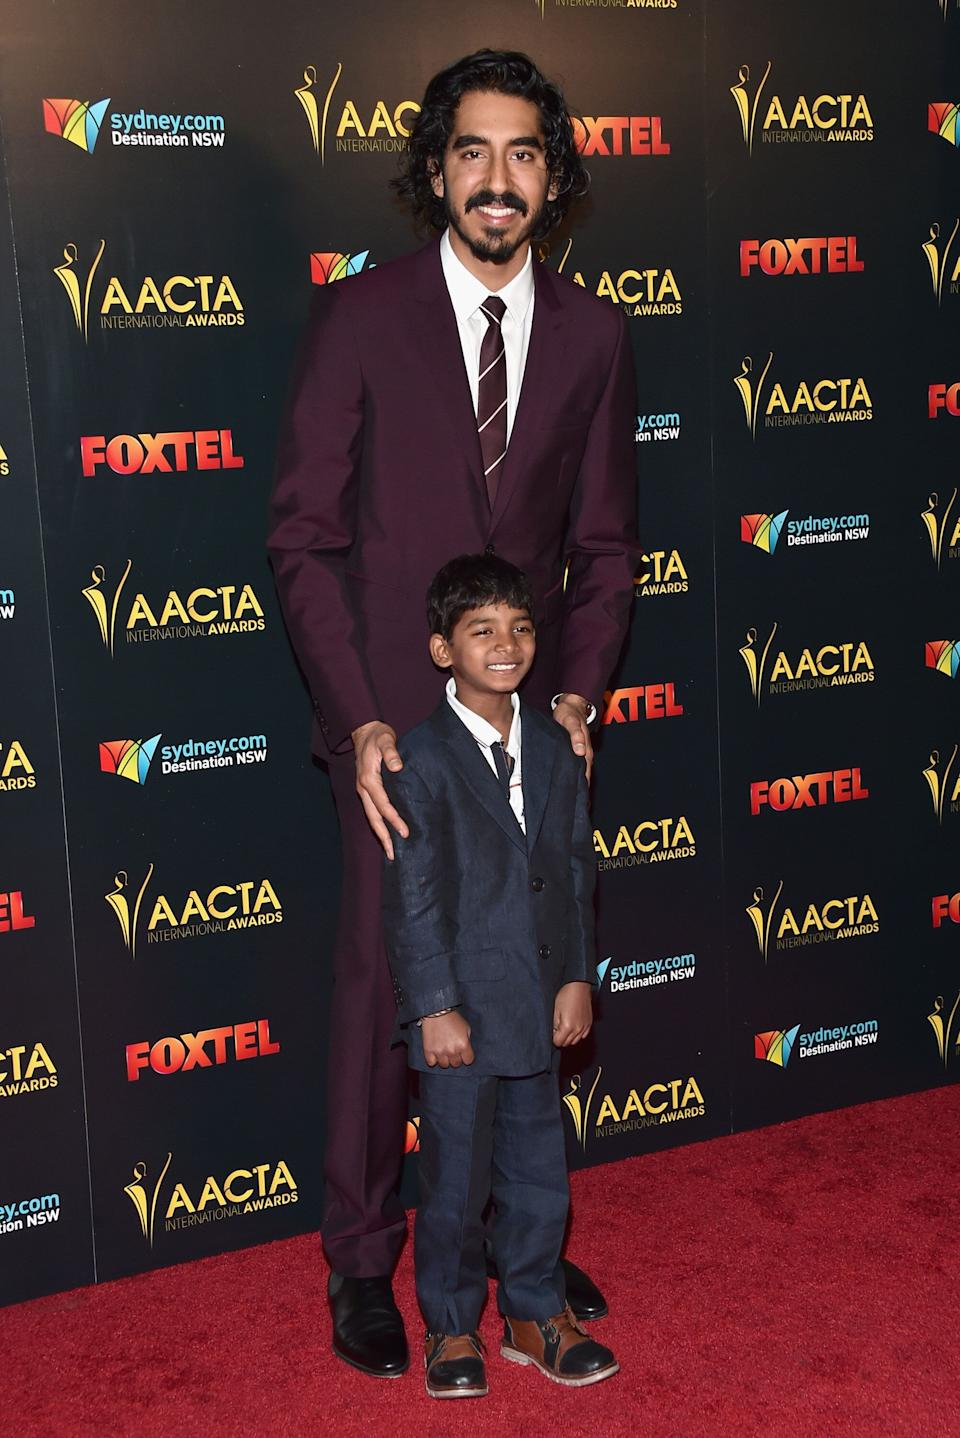 Patel and Sunny Pawar at the 6th AACTA International Awards at Avalon Hollywood on Jan. 6, 2017, in Los Angeles.